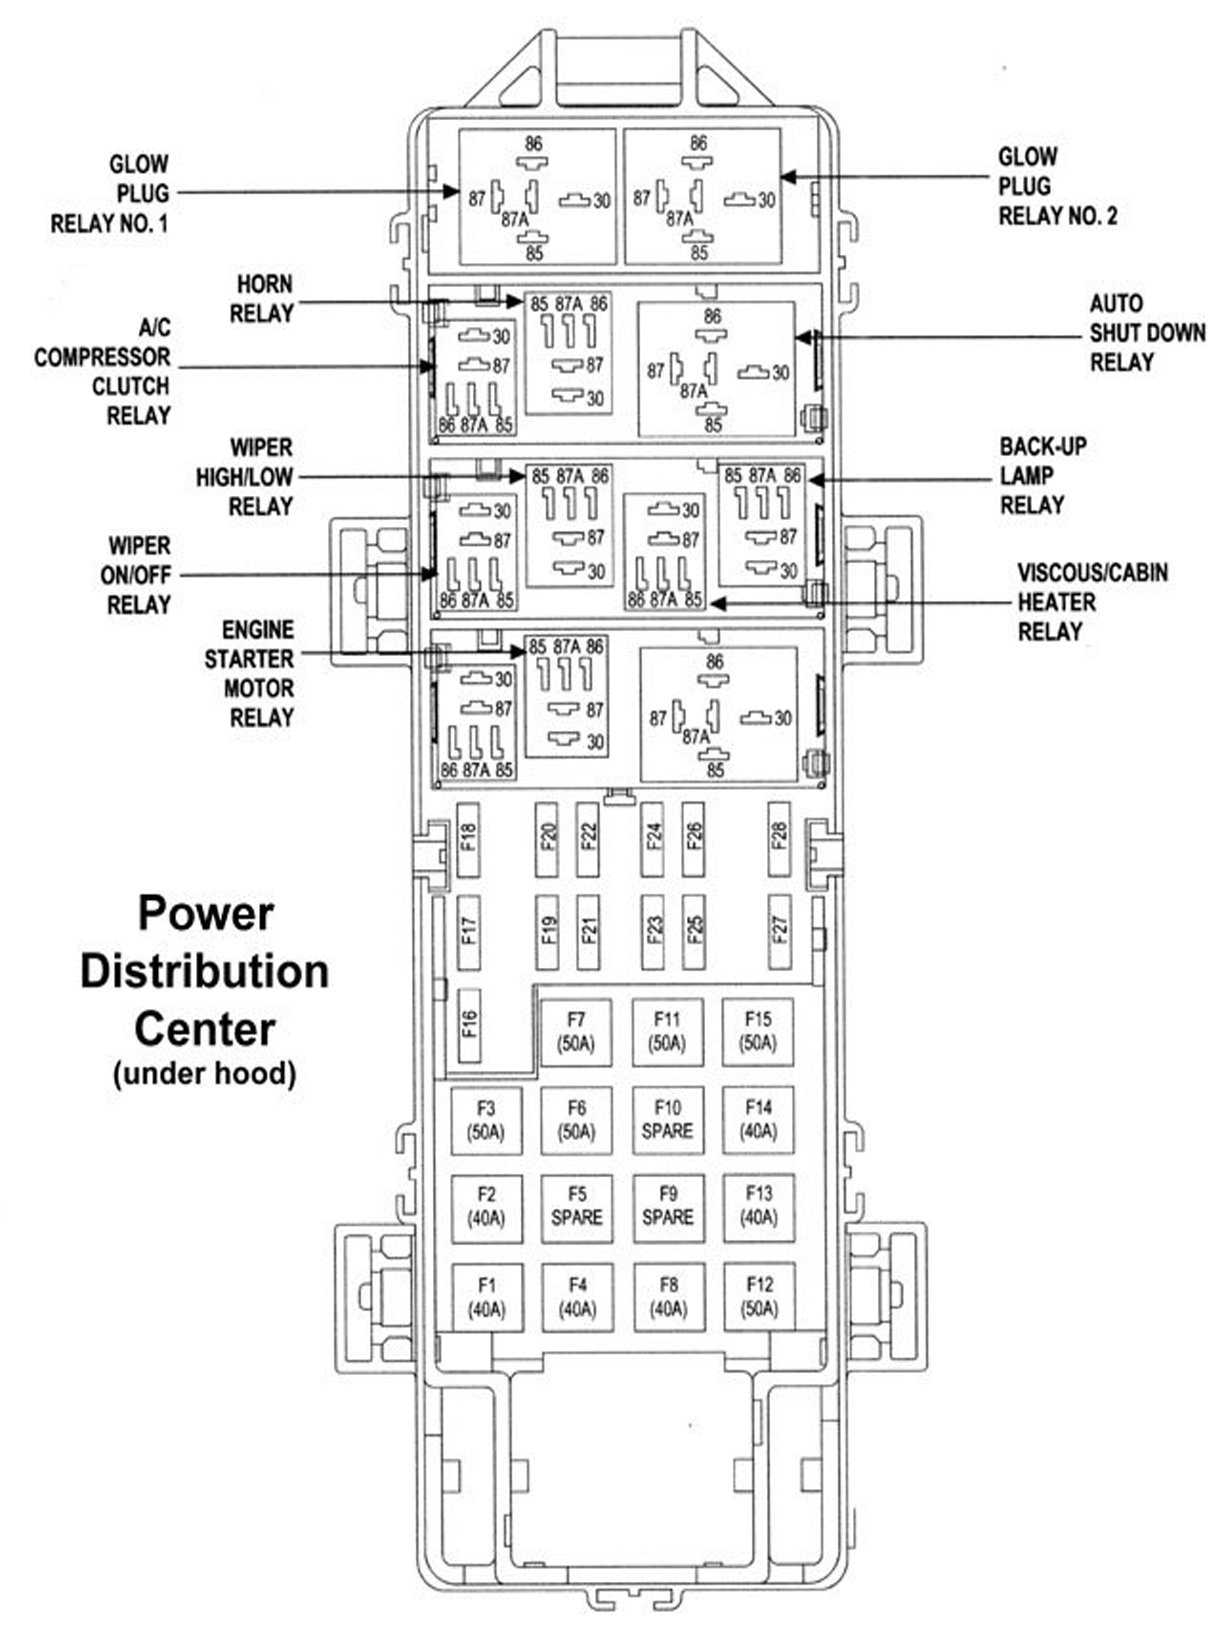 Jeep Grand Cherokee 1999 2004 Fuse Box Diagram 397760 on 2000 cherokee turn signal flasher